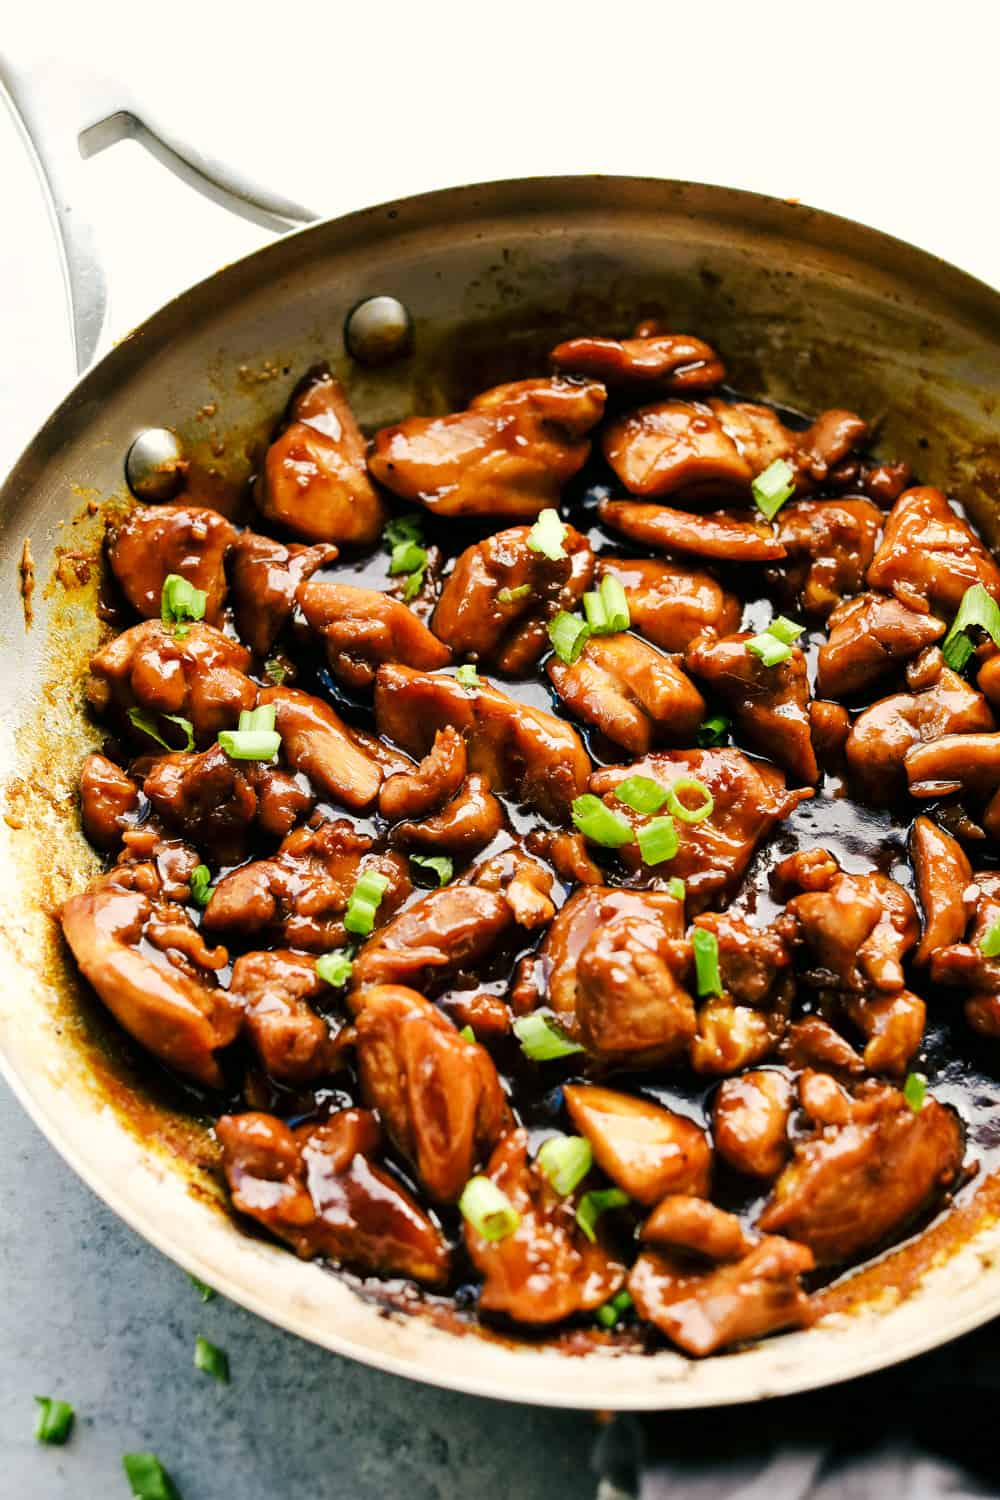 Best Bourbon Chicken is juicy, tender chicken thighs cut into pieces simmered in a sweet, brown sugar glaze that will melt in your mouth. Rich in flavor and served over rice for a complete meal!